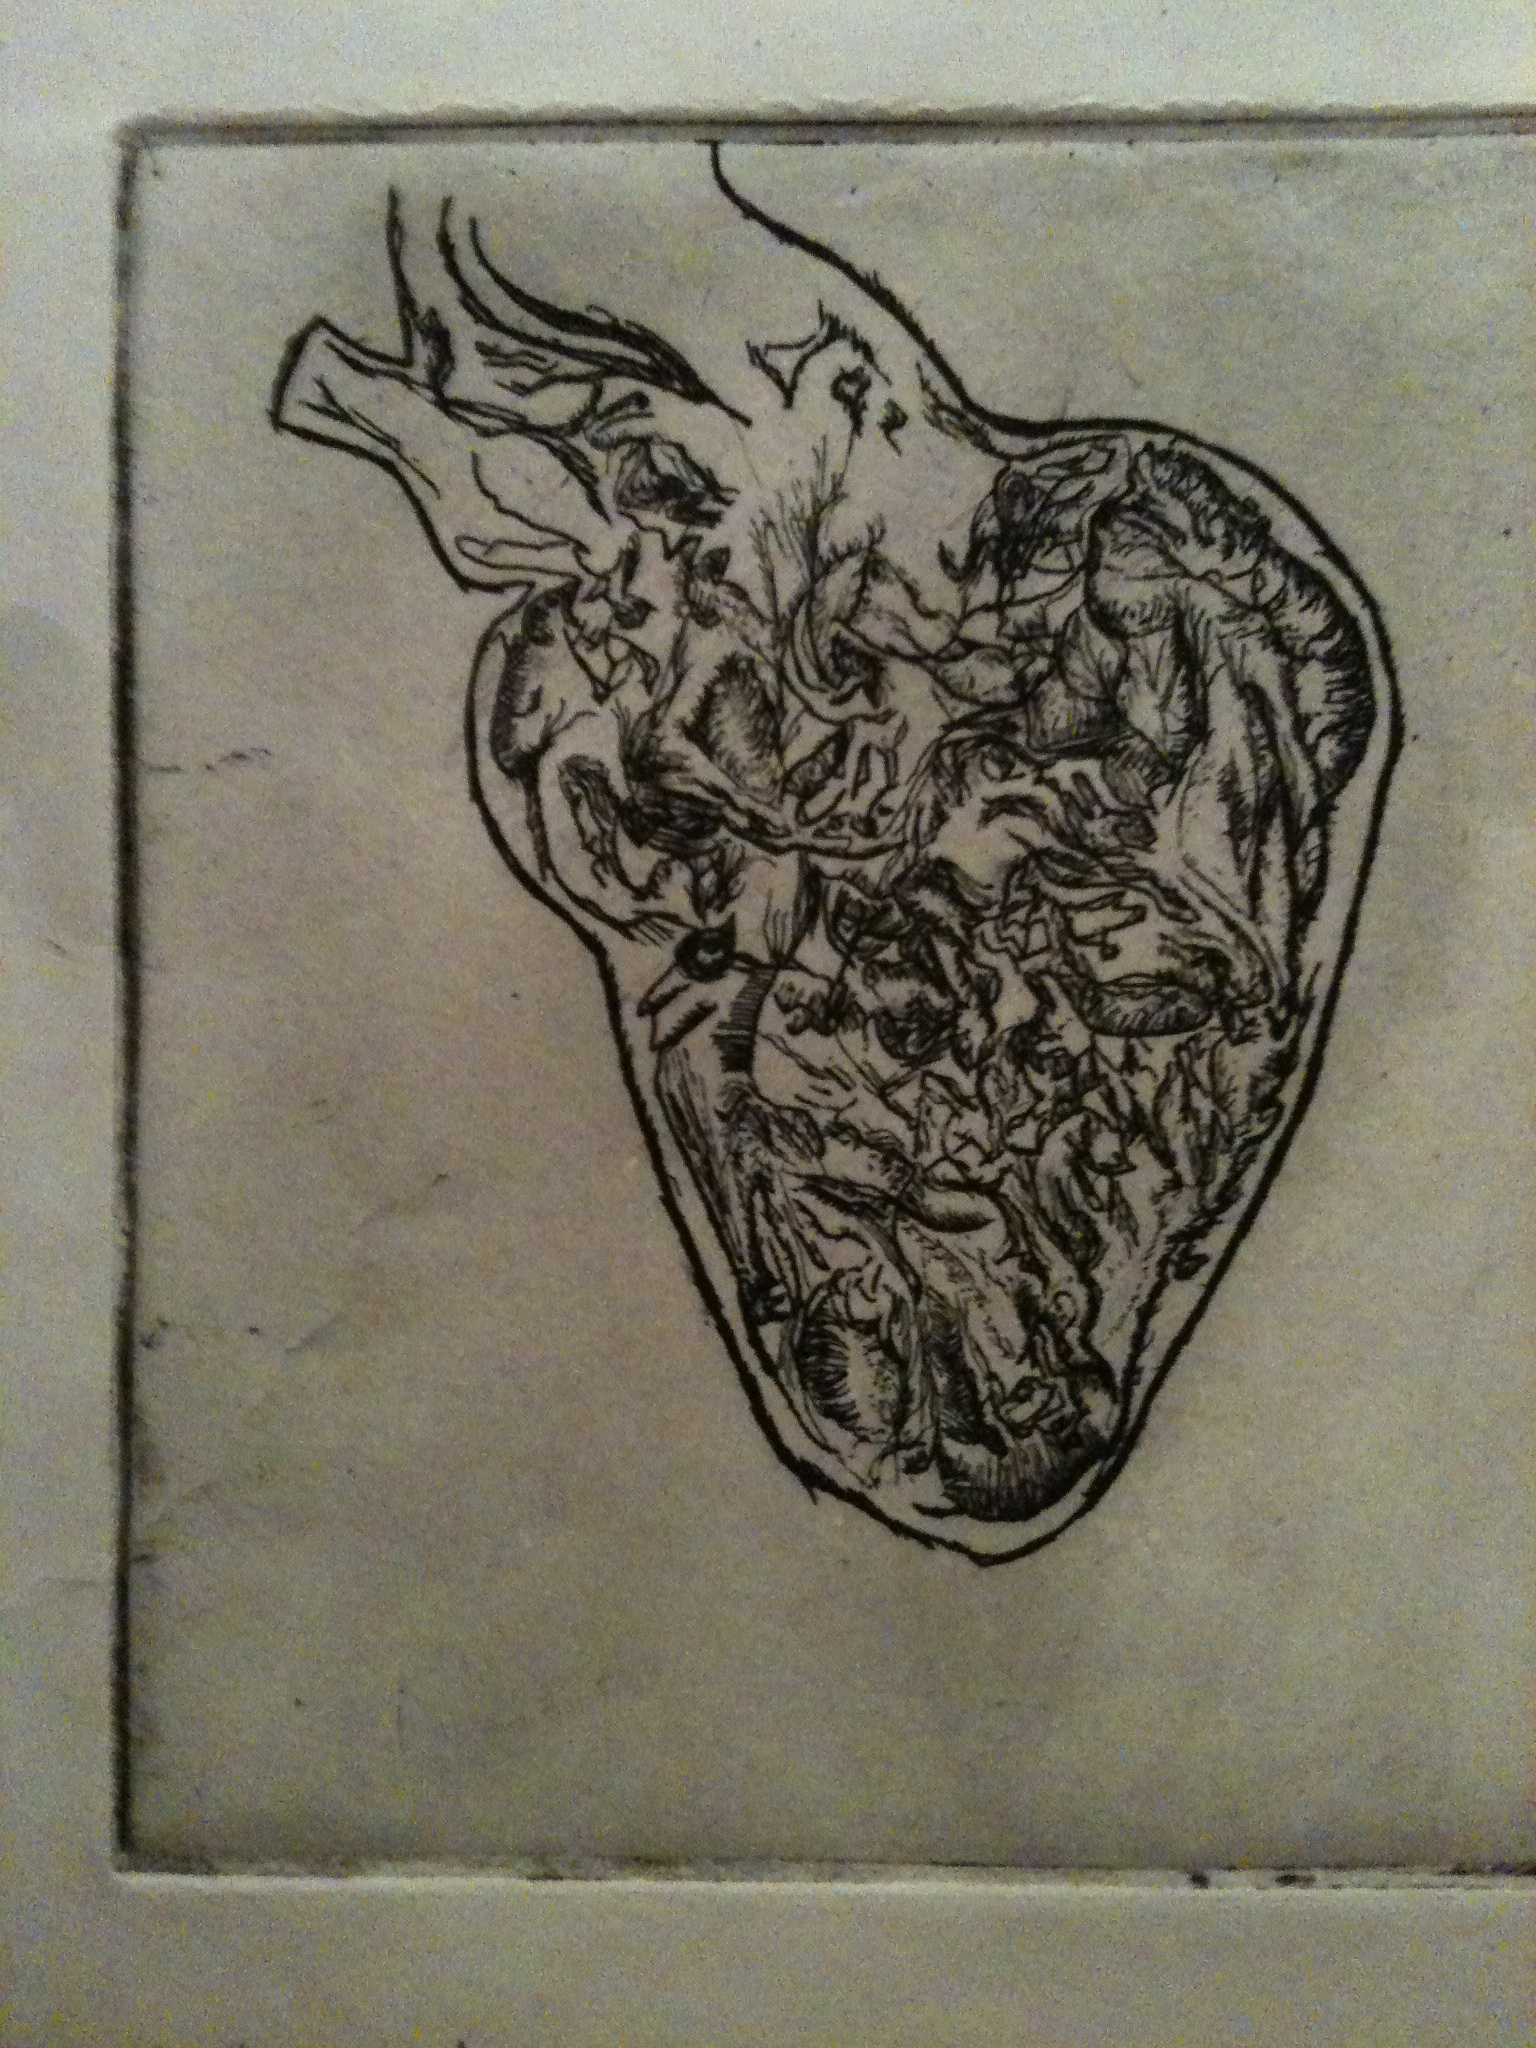 before i made you swallow acid. intaglio